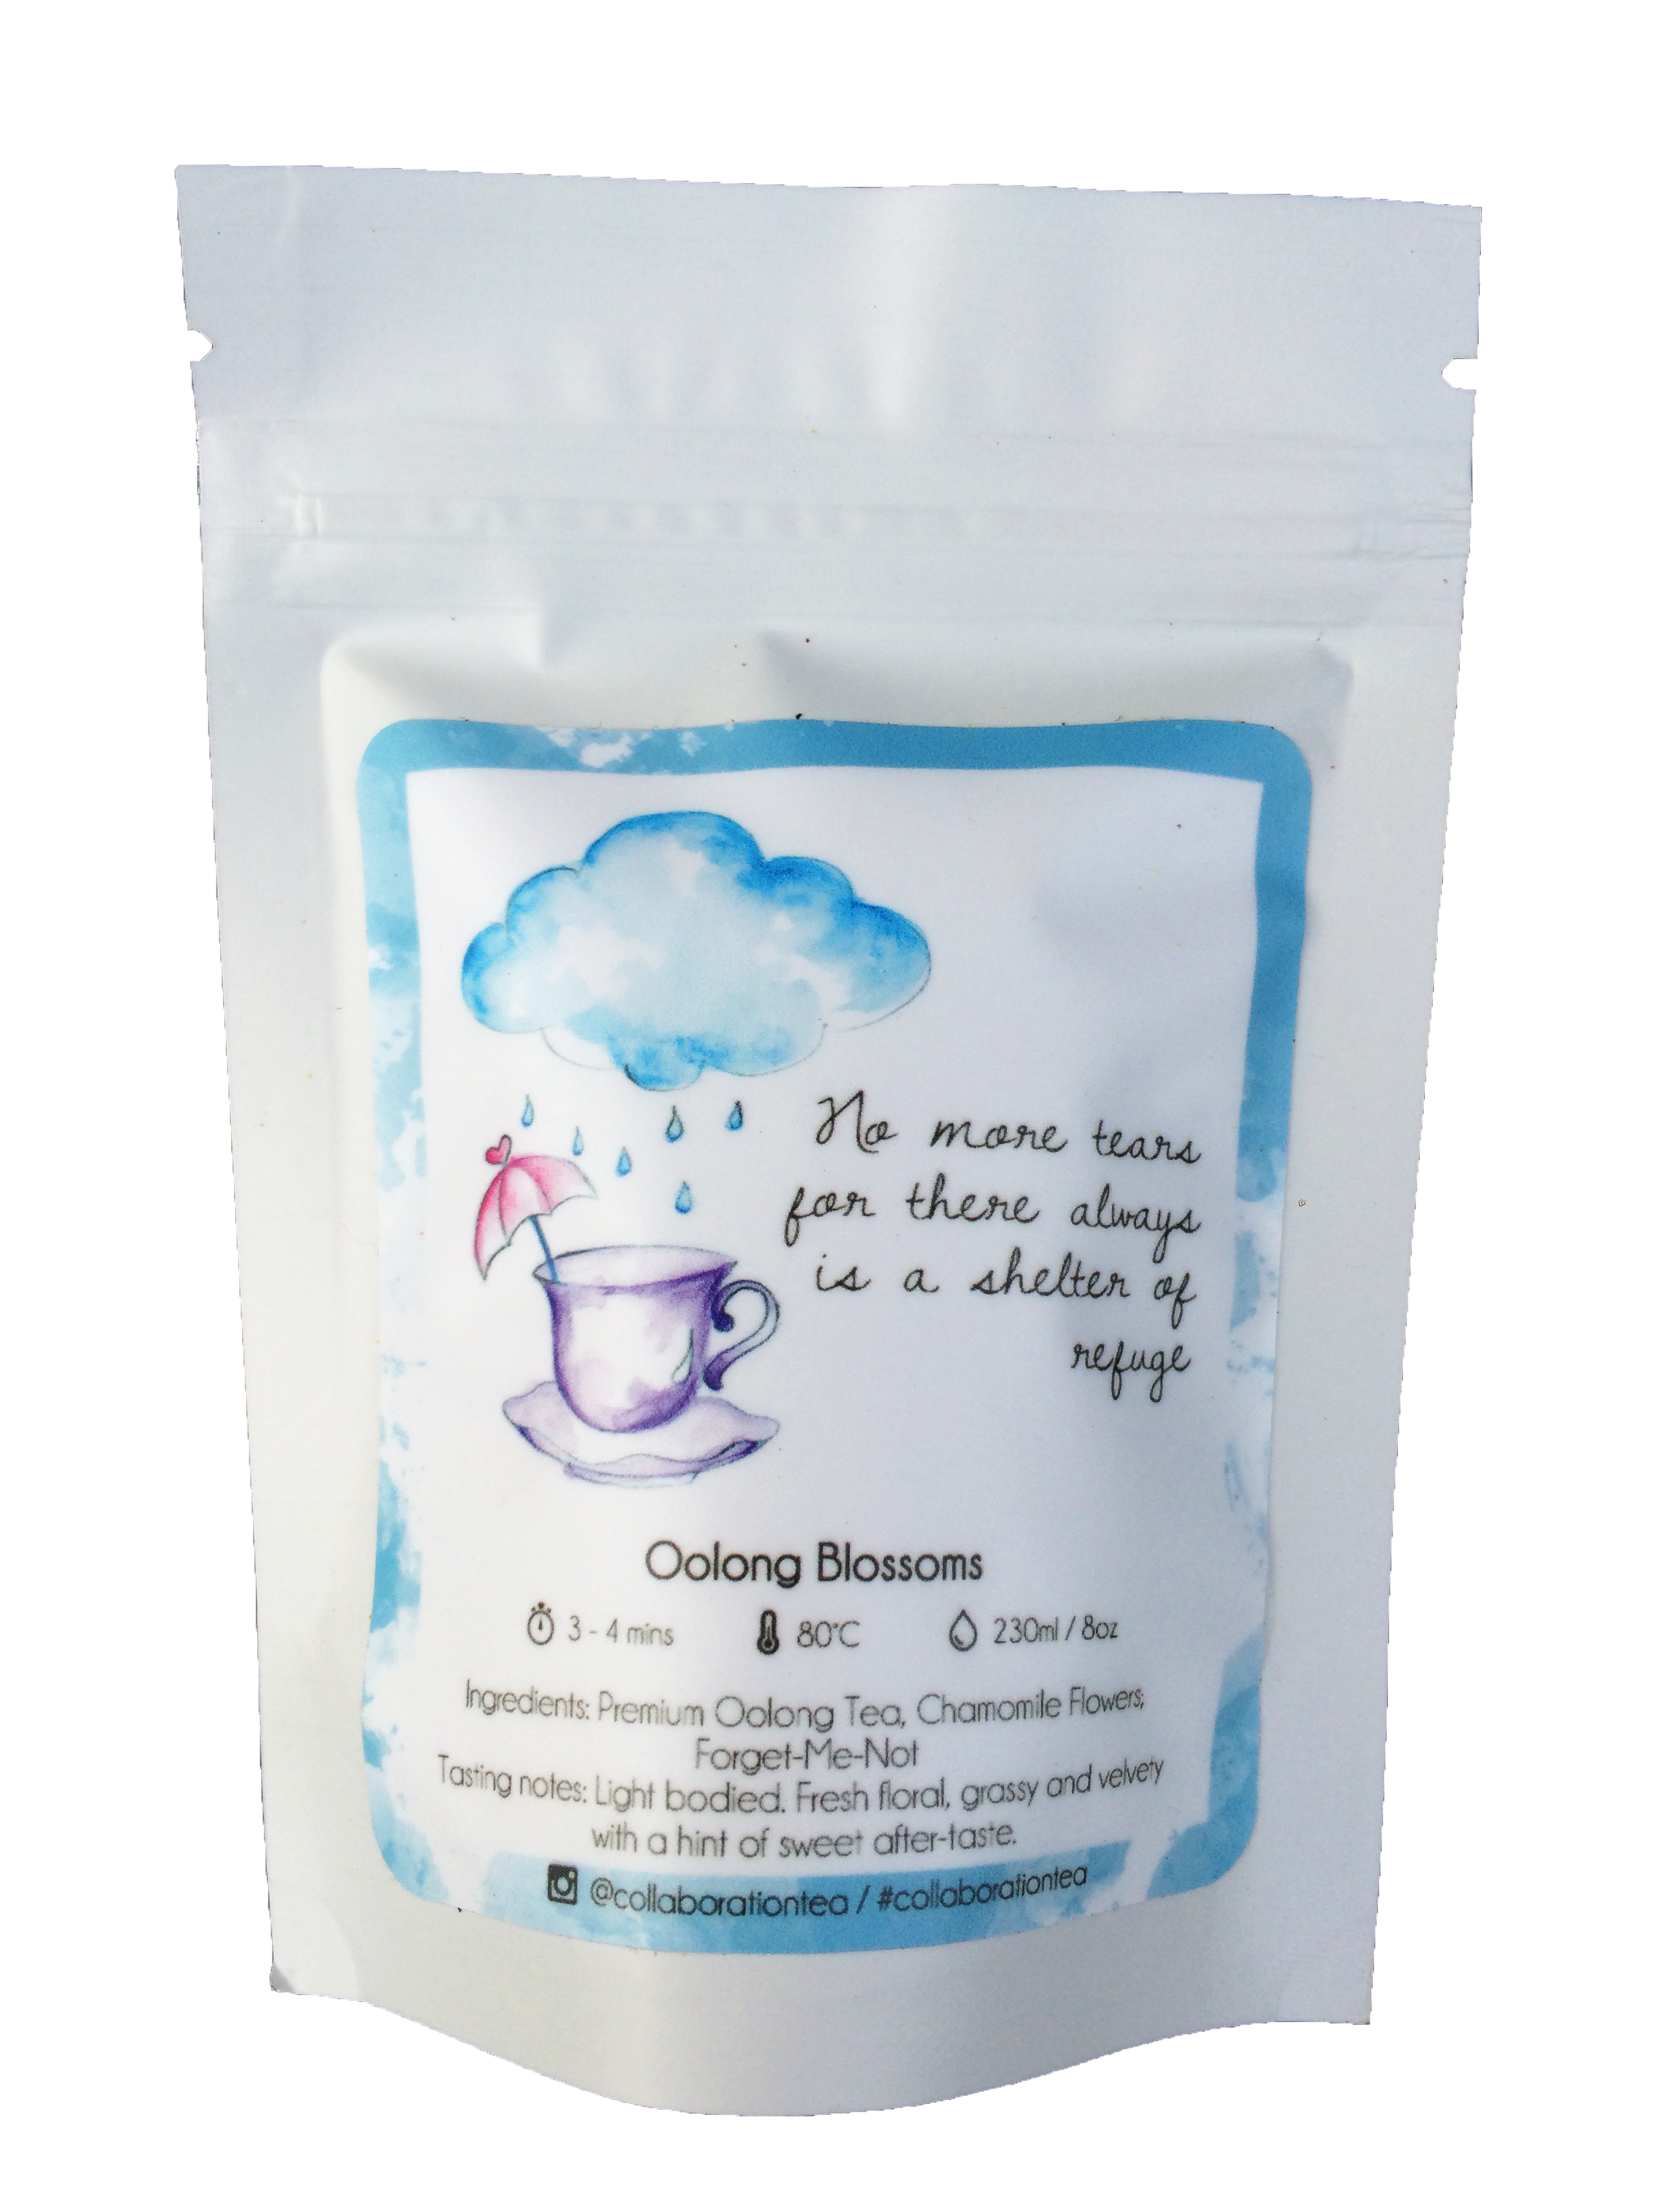 Oolong Blossoms - Let the natural floral aroma of this blend whisk you into flowery dreams. Each Oolong leaf perfectly roasted to provide the perfect base for this blend. We absolutely love how the whole Chamomile flowers in this blend further enhance the fragrant notes of the Oolong making the two ingredients a perfect complement.   Premium Oolong Tea, Chamomile Flowers, Forget-Me-Not www.collabtea.com